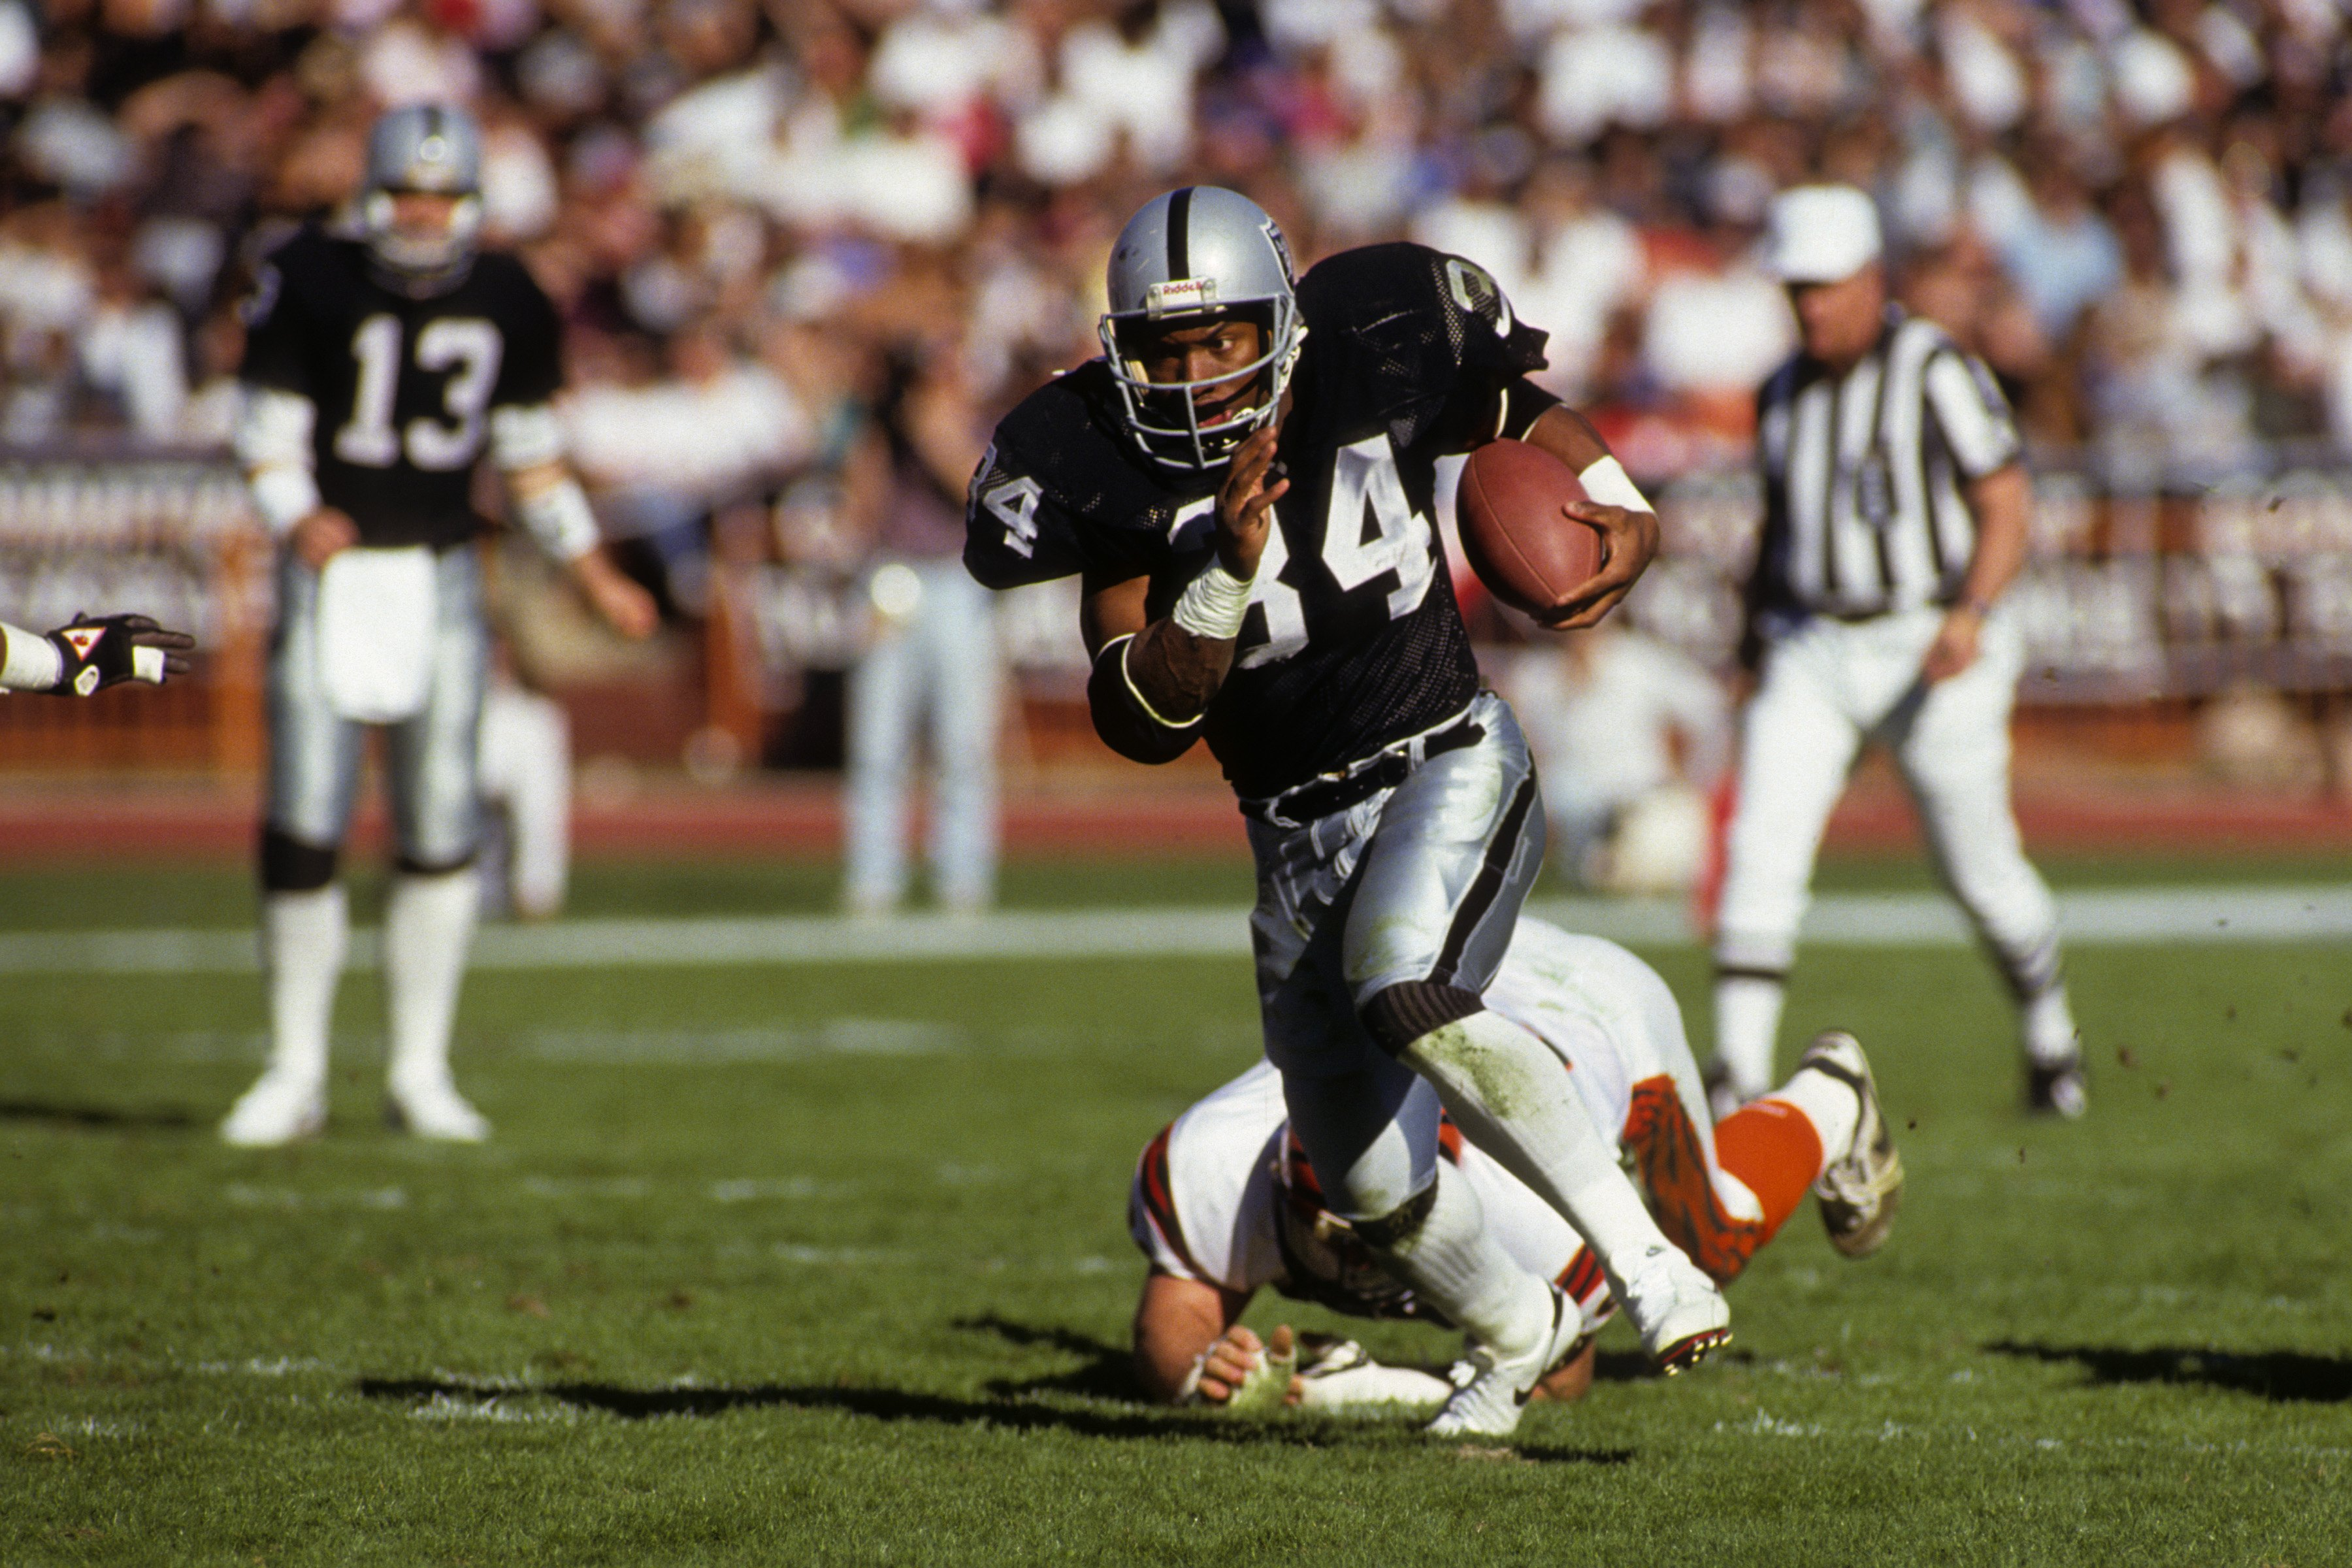 LOS ANGELES - JANUARY 13:  Running back Bo Jackson #34 of Los Angeles Raiders breaks free on the open field against the Cincinnati Bengals defense during the 1990 AFC Divisional Playoffs at the Los Angeles Memorial Coliseum on January 13, 1991 in Los Ange